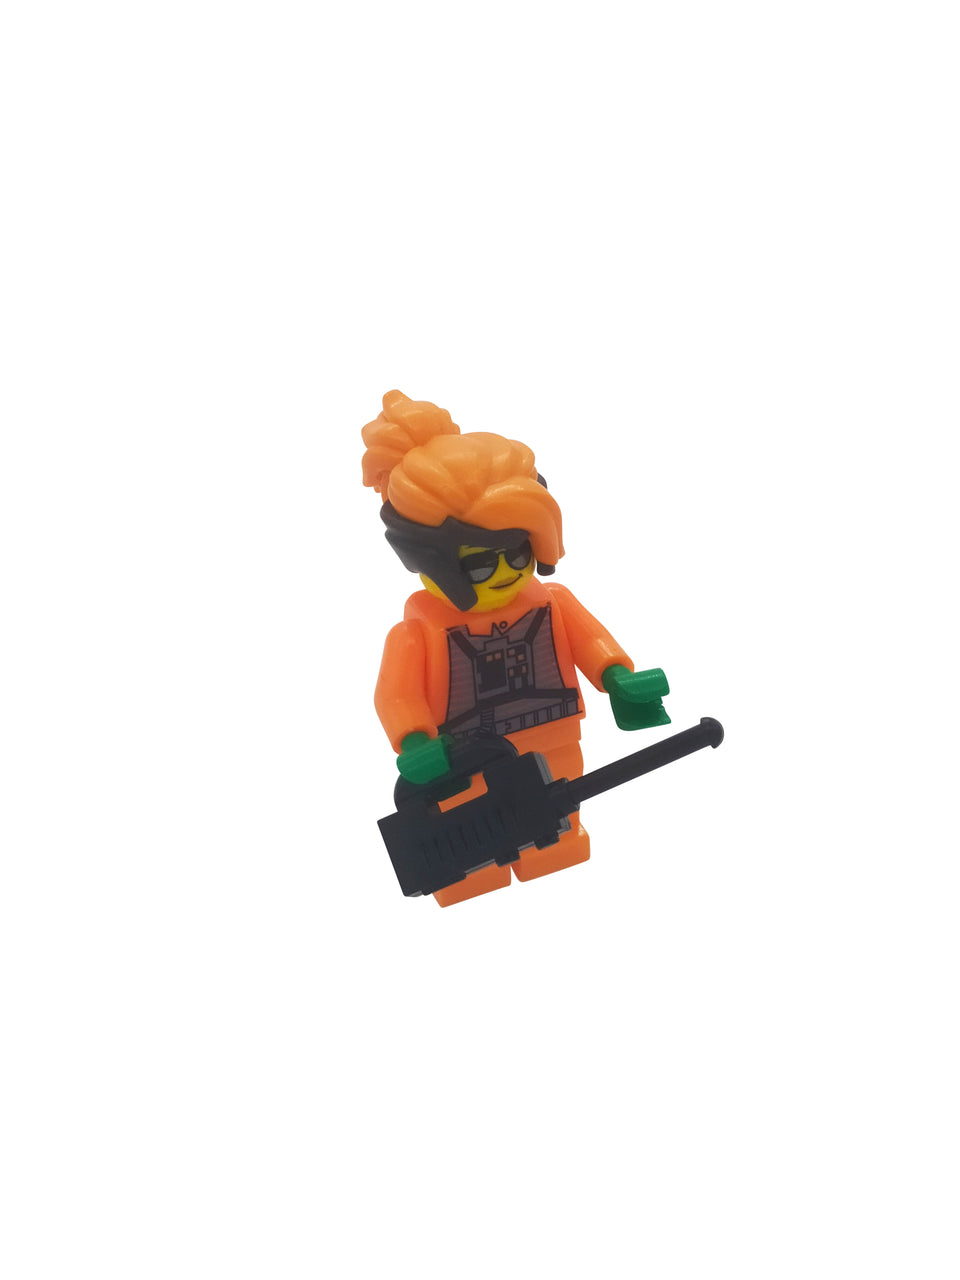 Lego figure with accessories